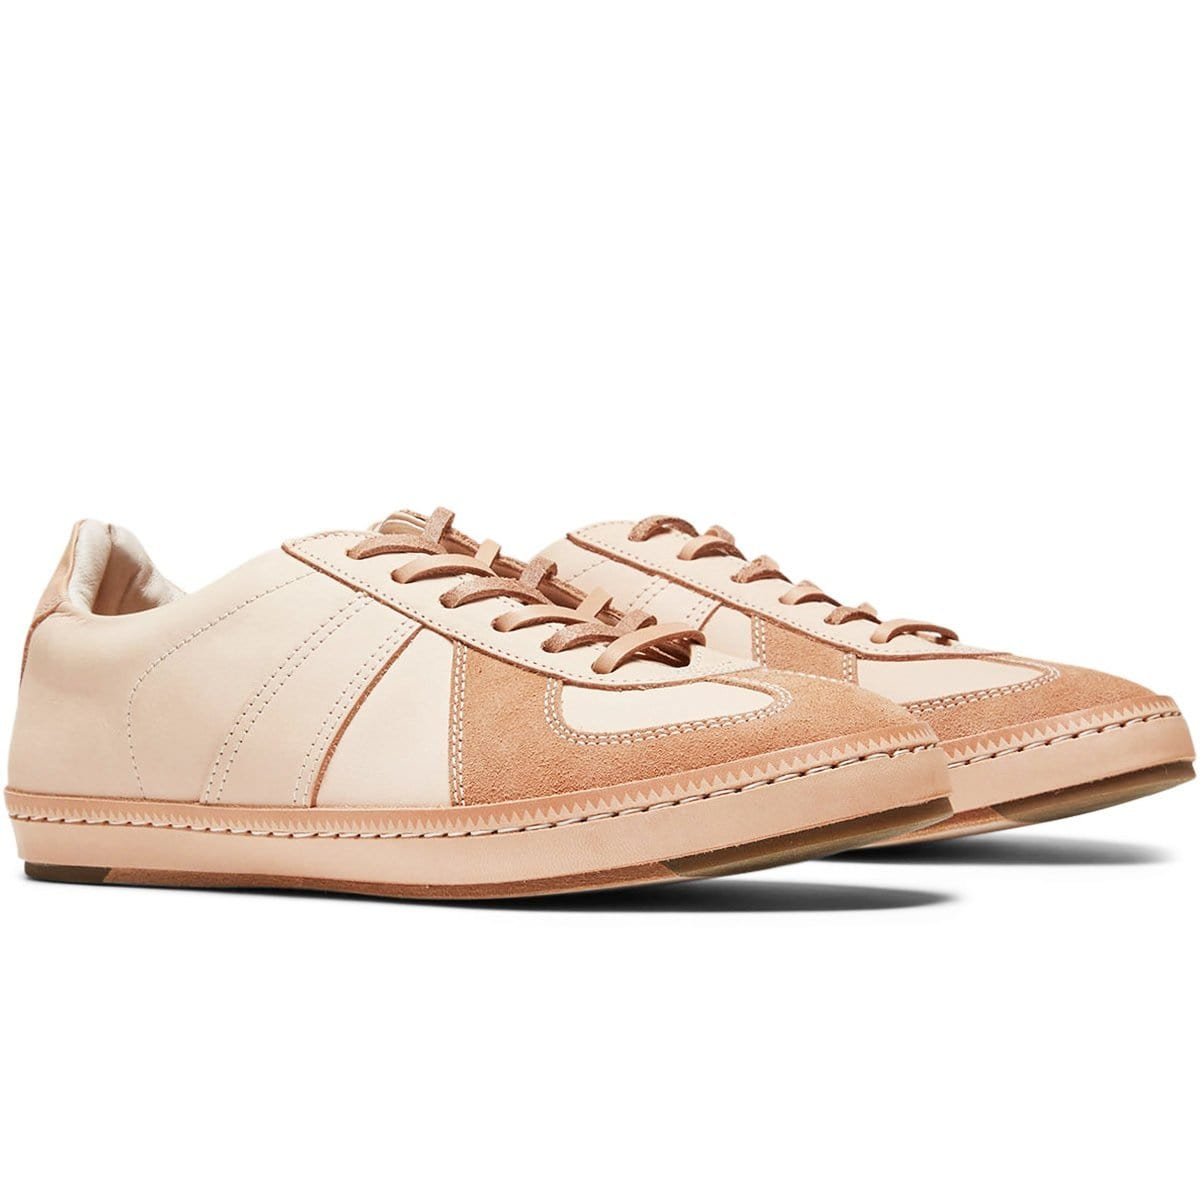 Hender Scheme Shoes MANUAL INDUSTRIAL PRODUCTS 05